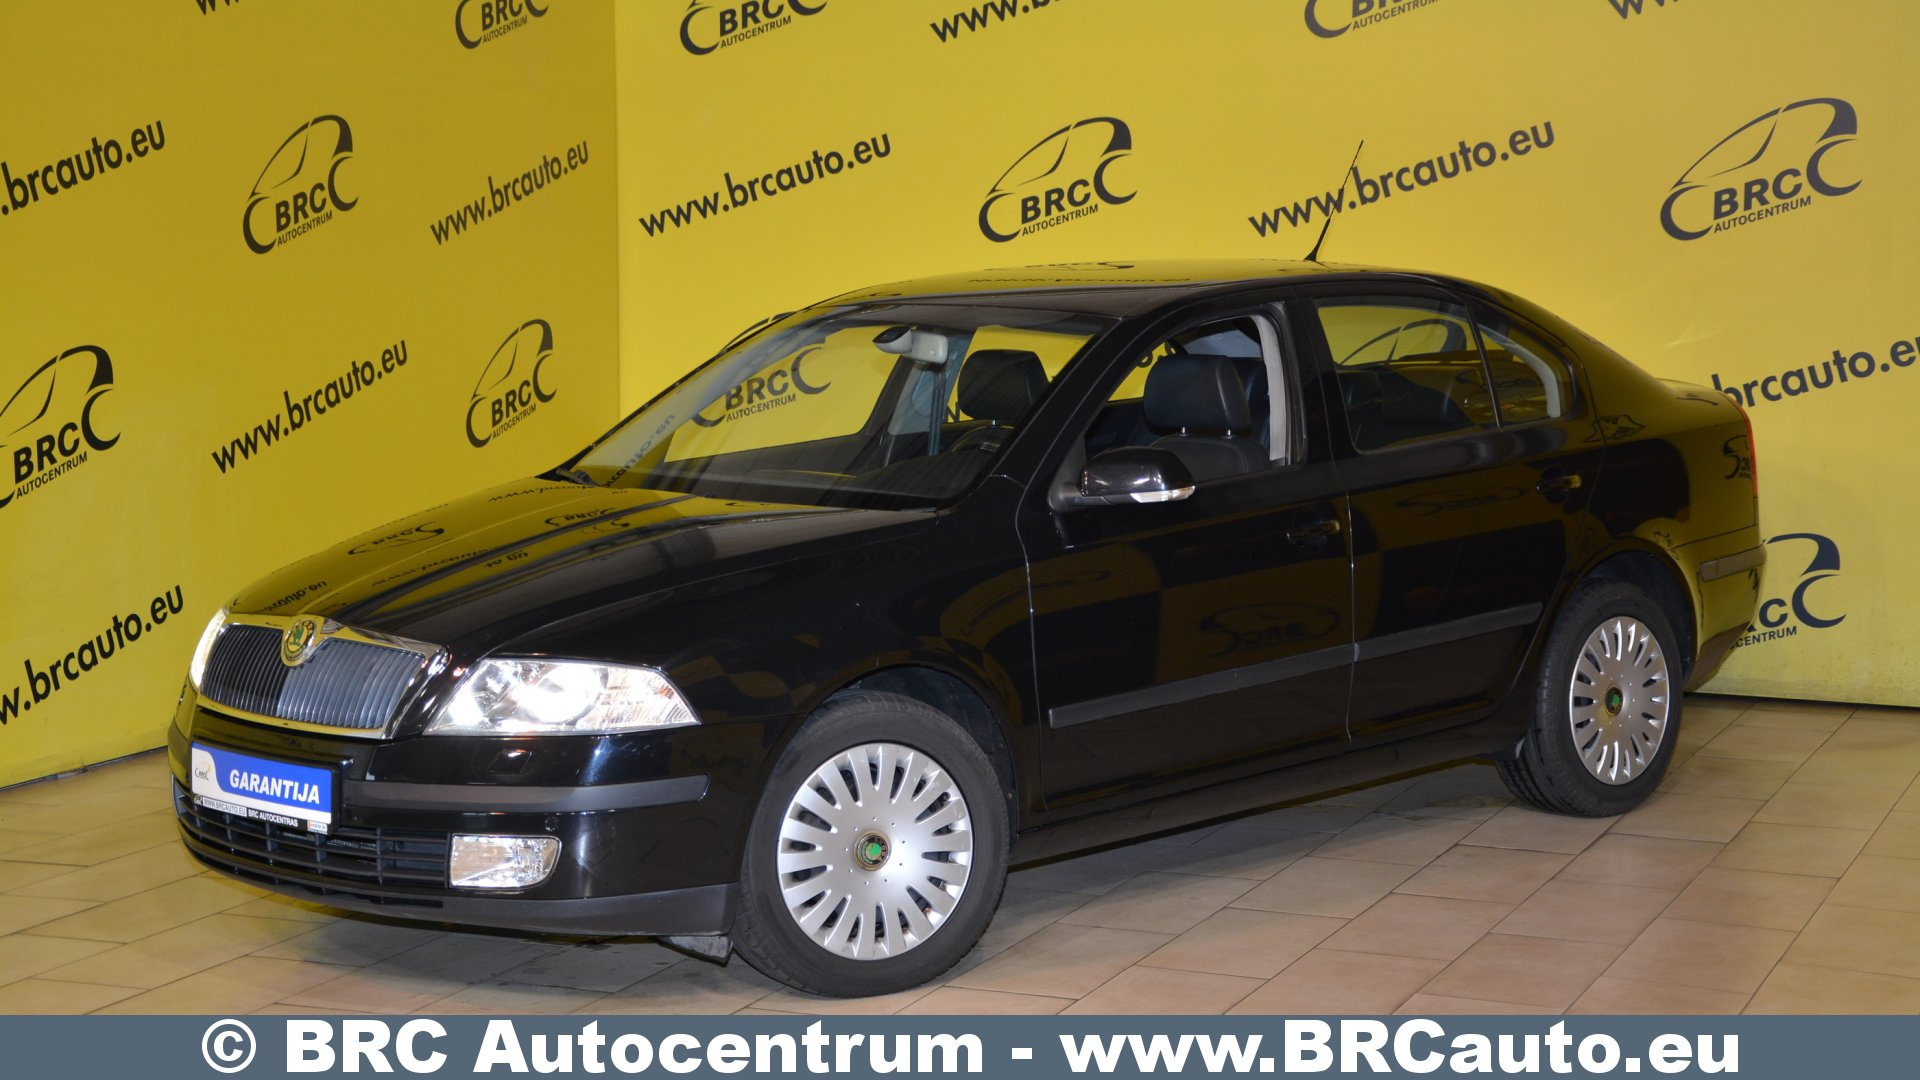 skoda octavia 1 9 tdi automatas no 345 brc autocentrum. Black Bedroom Furniture Sets. Home Design Ideas